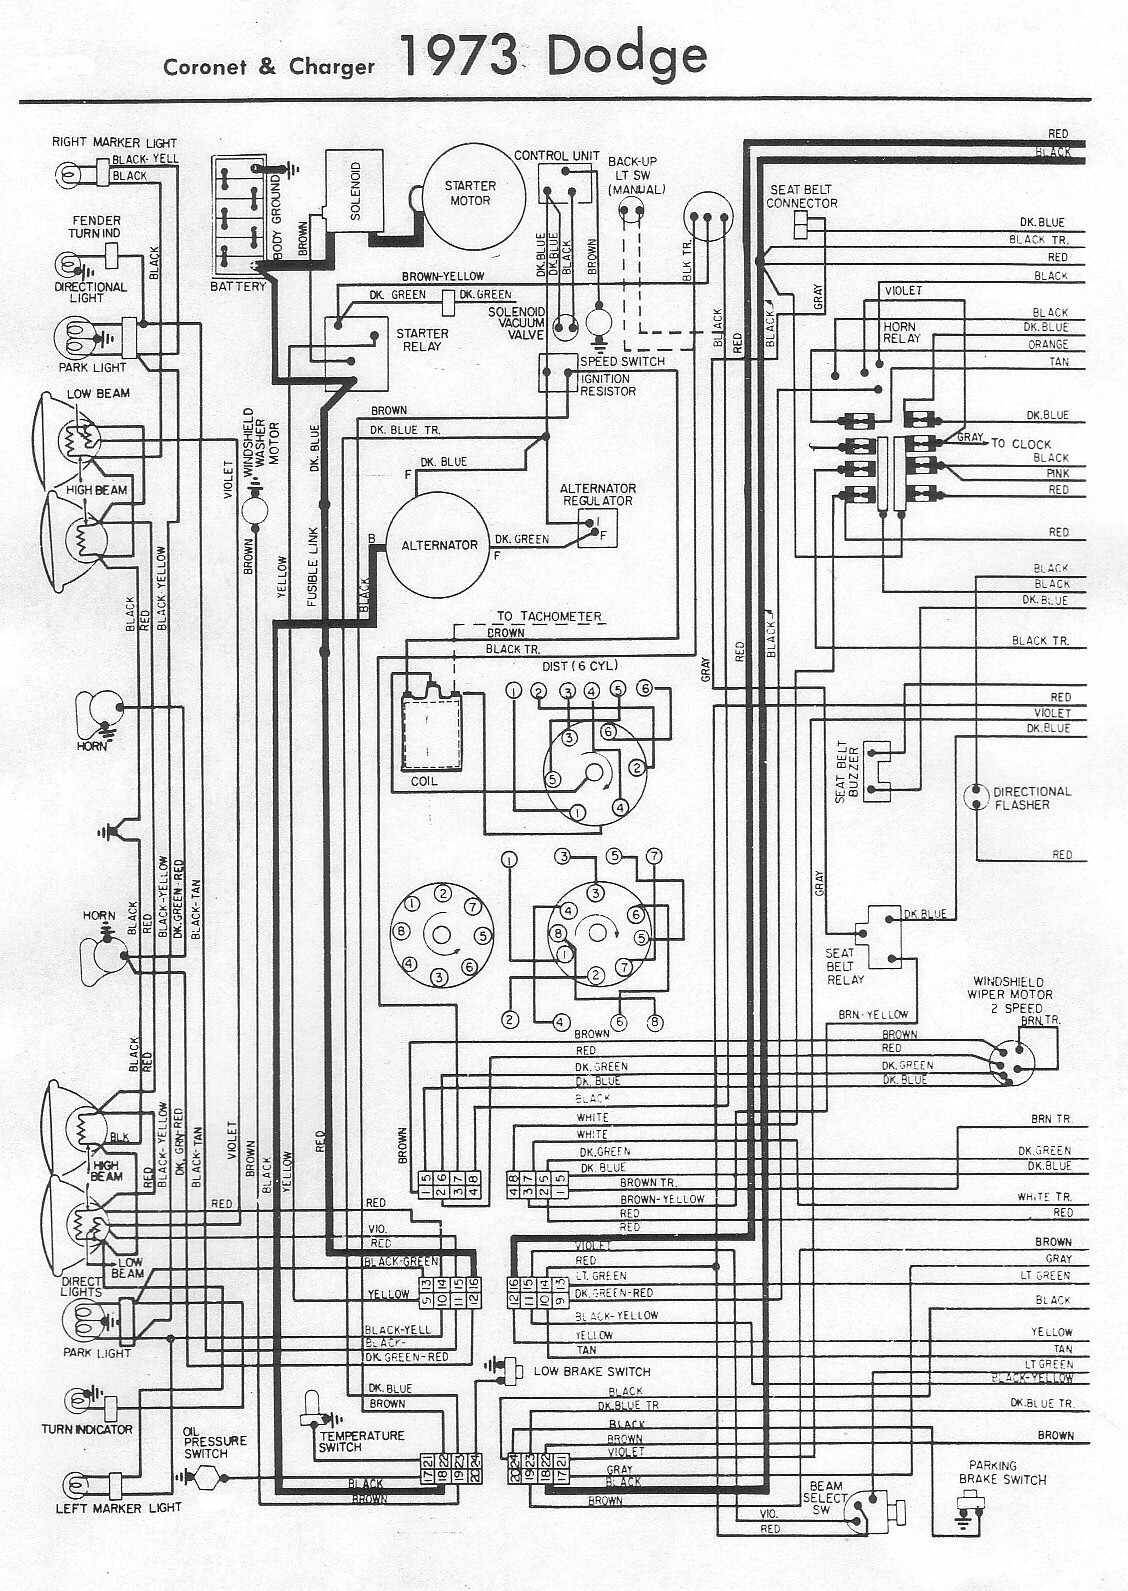 hight resolution of 1974 dodge charger wiring diagram 33 wiring diagram